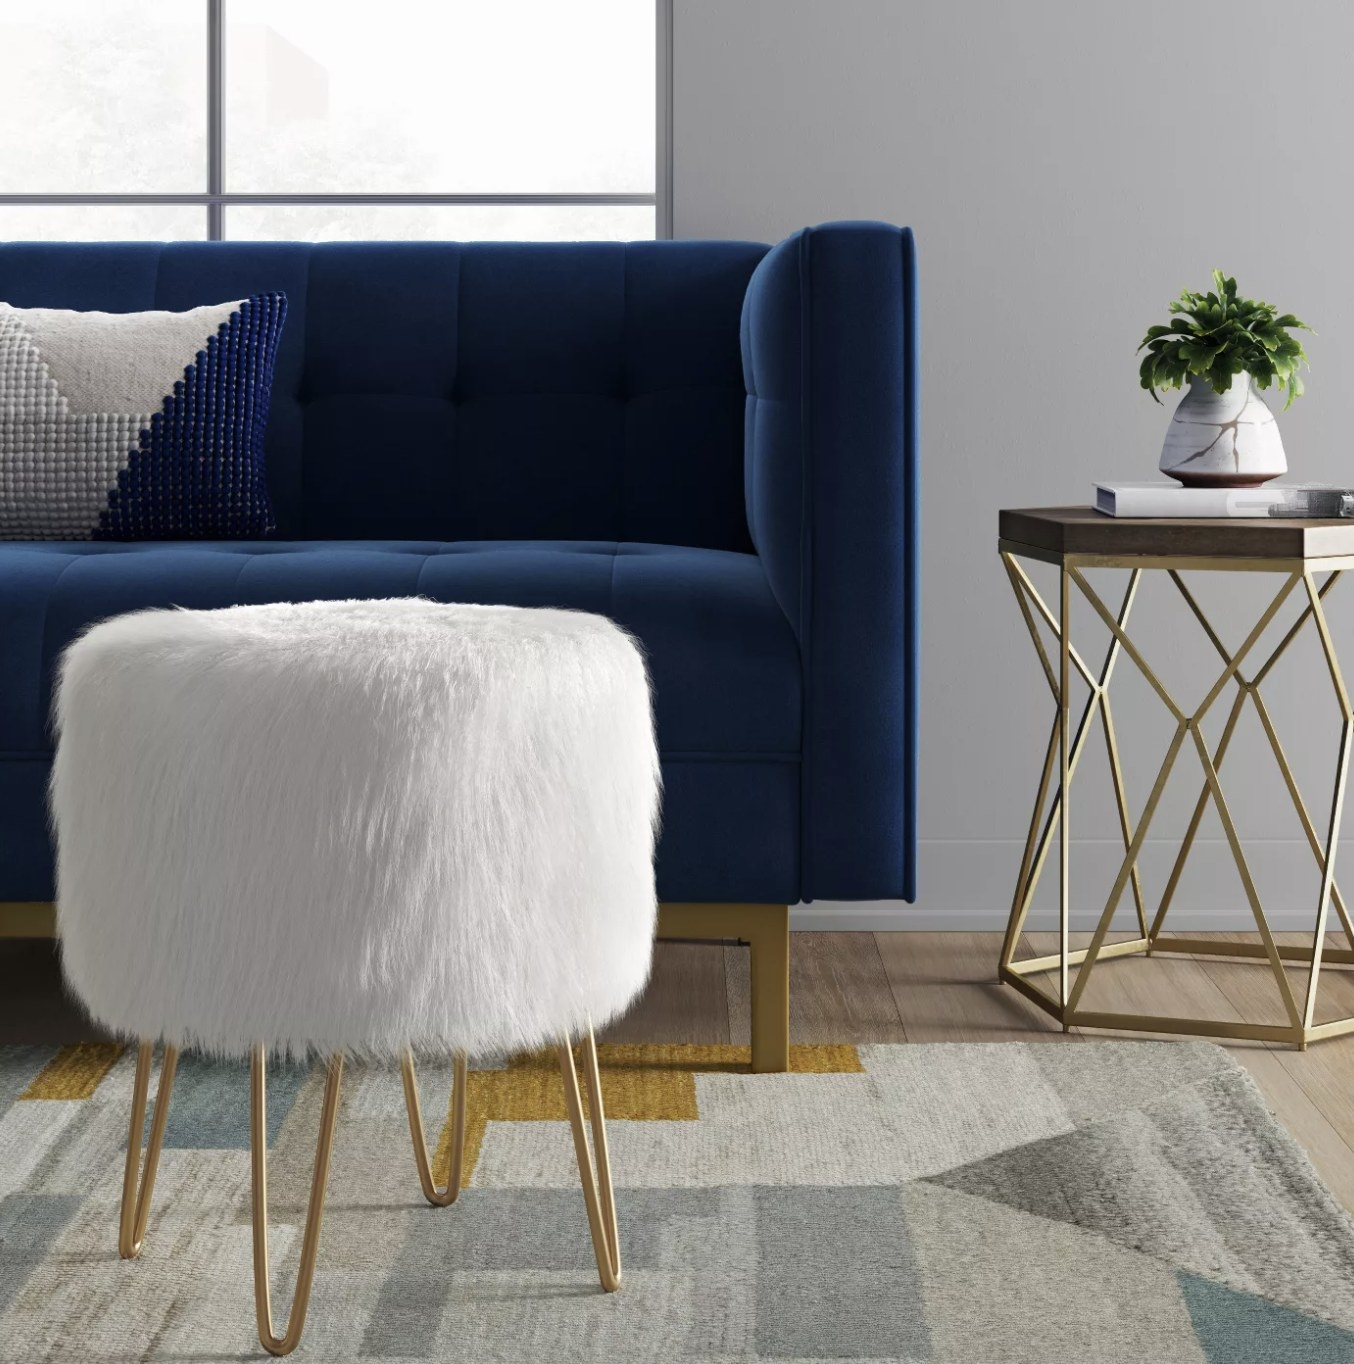 A white faux fur ottoman with gold legs